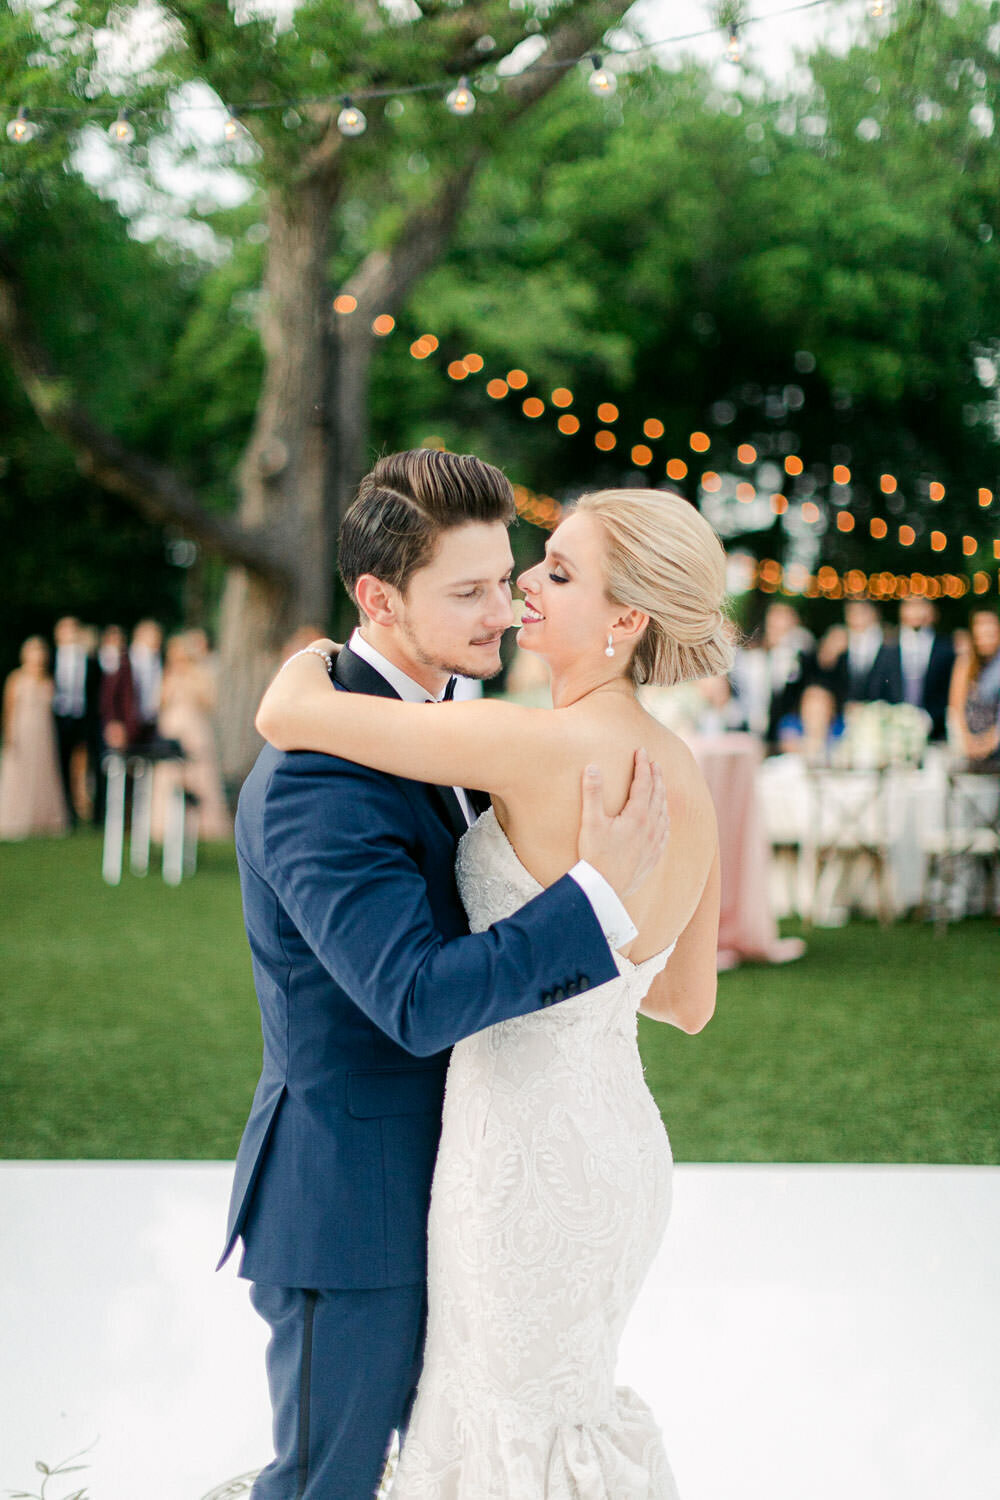 Bride and groom dancing cheek to cheek on white outdoor Arboretum wedding reception